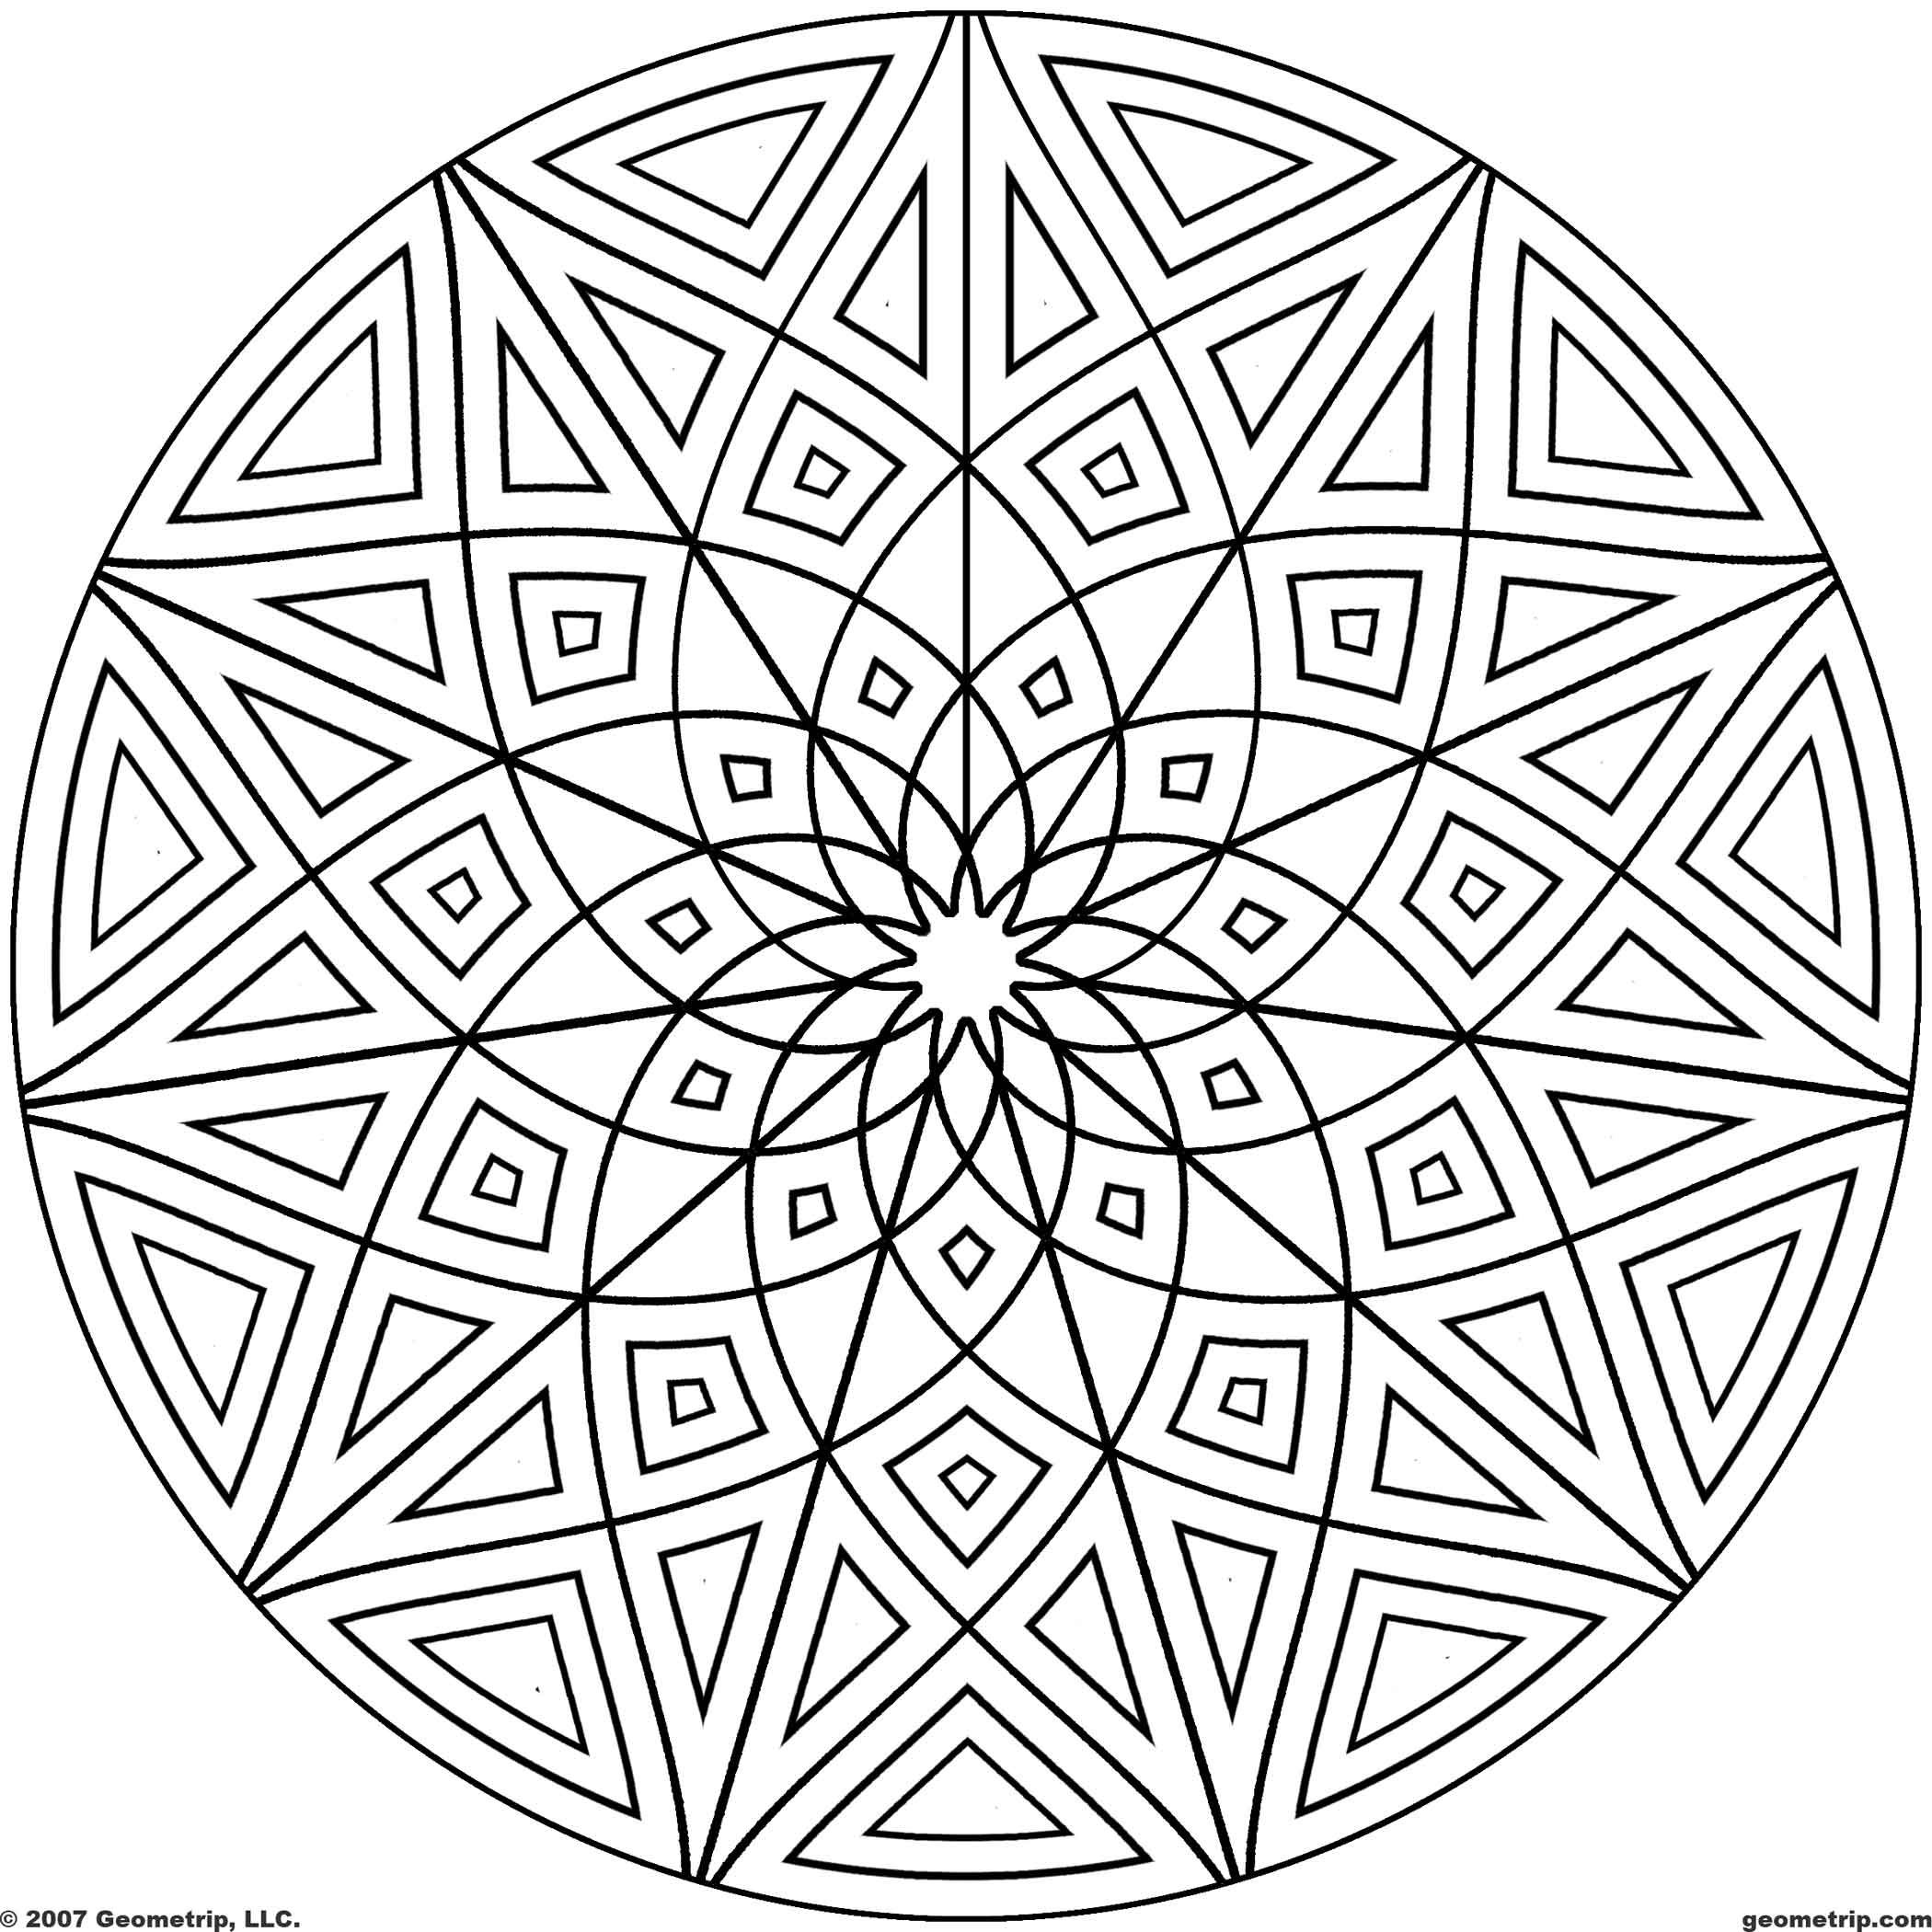 2100x2100 Coloring Pages Designs Kaleidoscope Coloring Pages Geometripcom